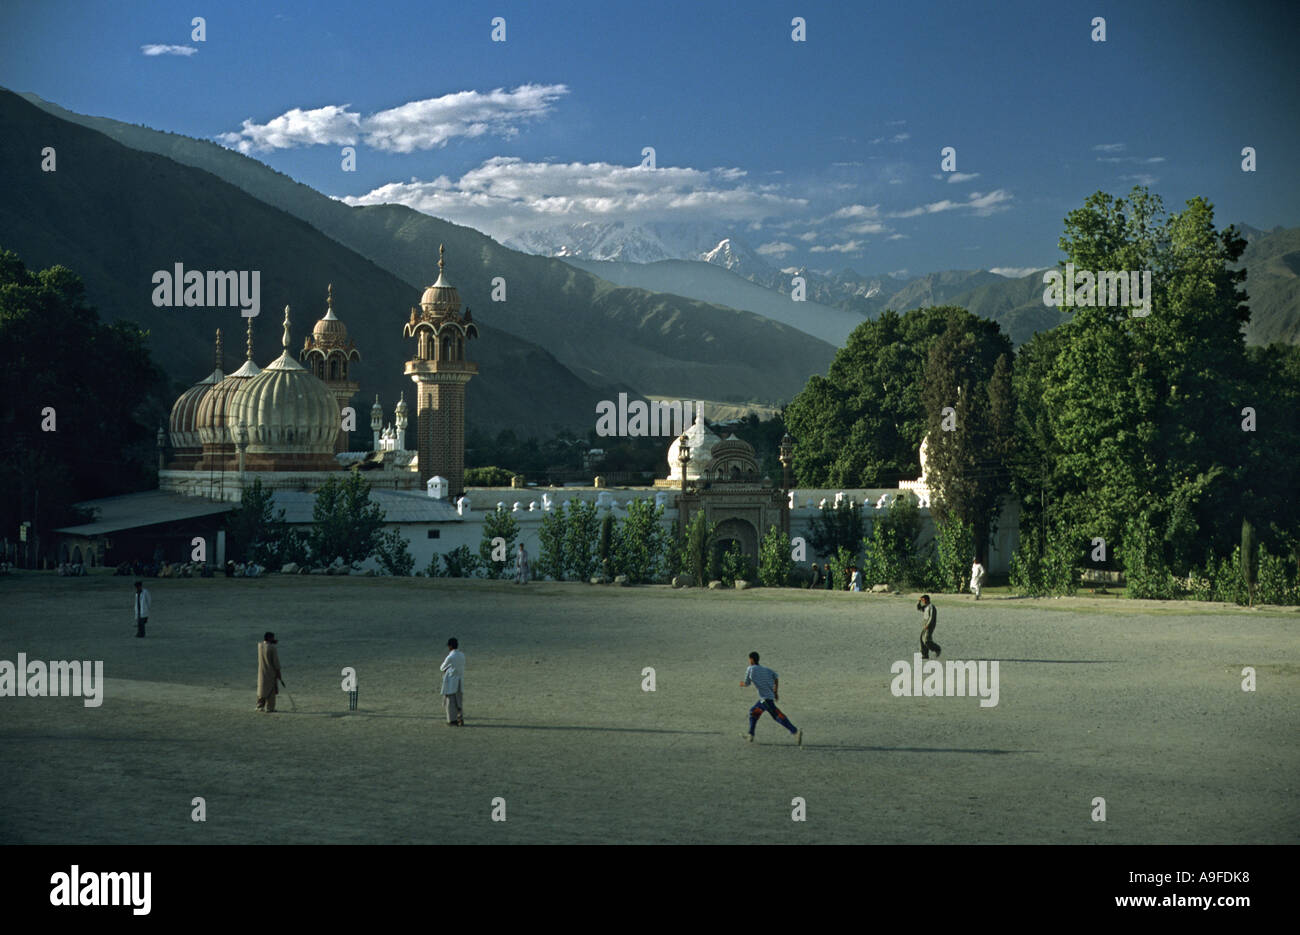 Men playing cricket in Chitral North West frontier region Pakistan View of Mosque and snow capped Afghanistan mountains in dista - Stock Image